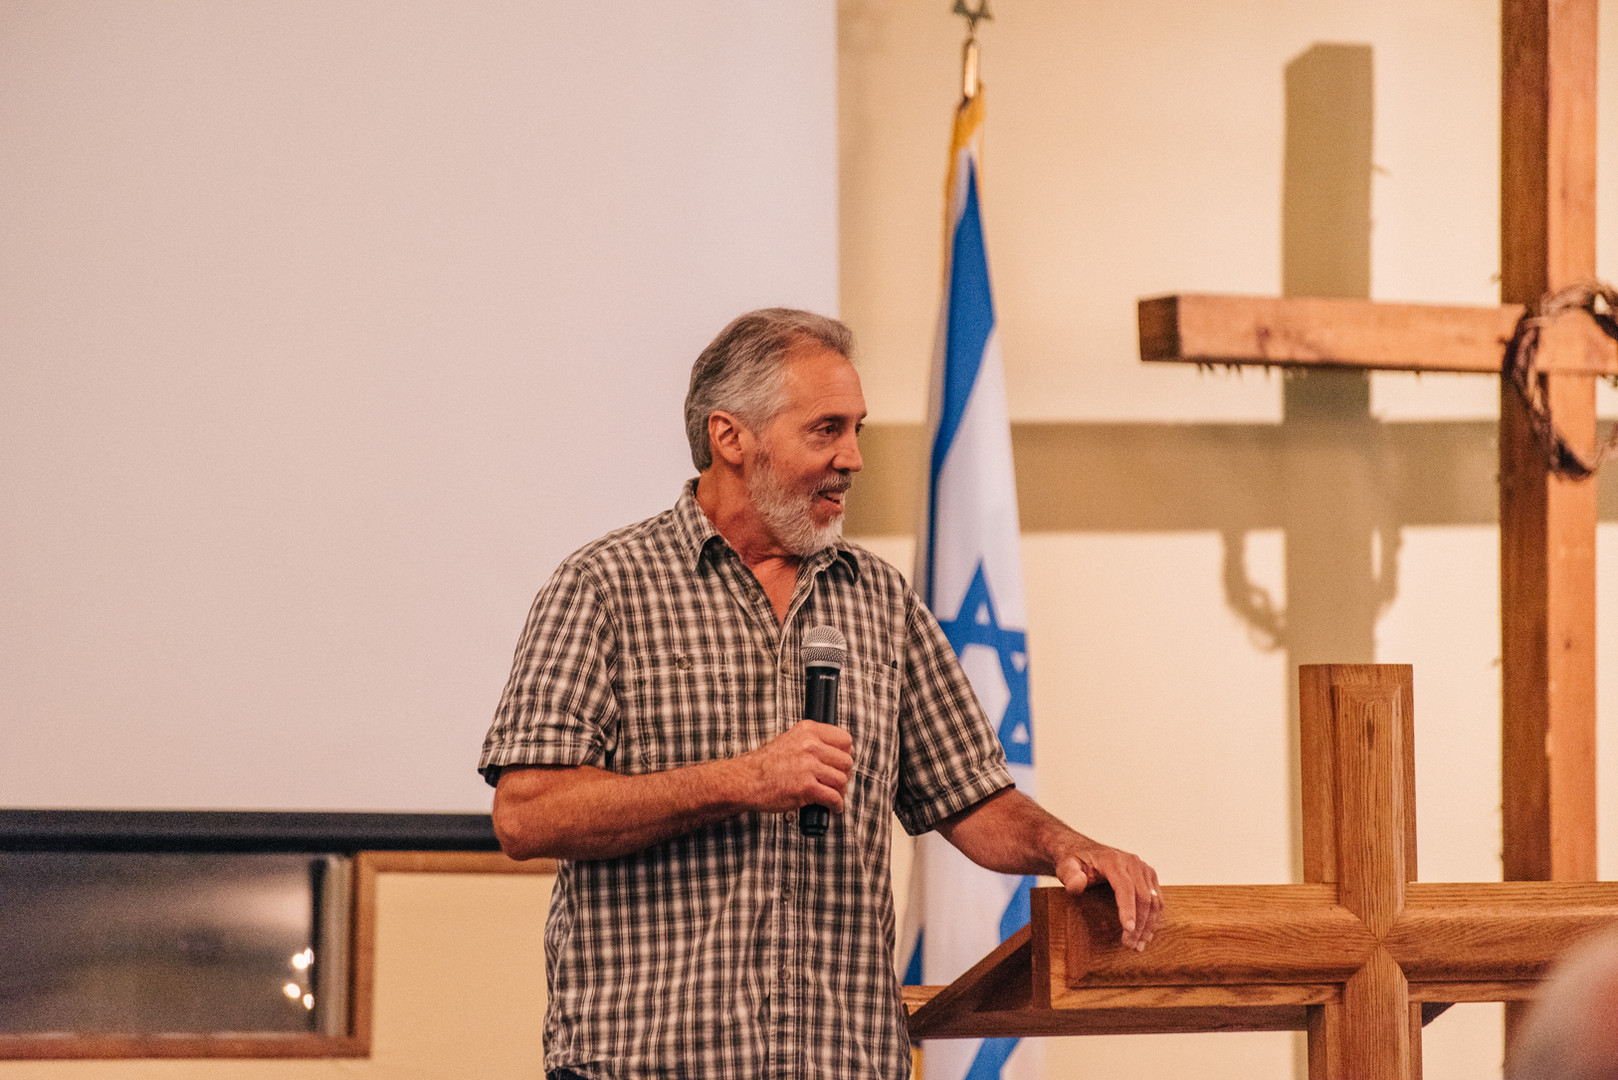 Assistant Pastor Tom Collucci